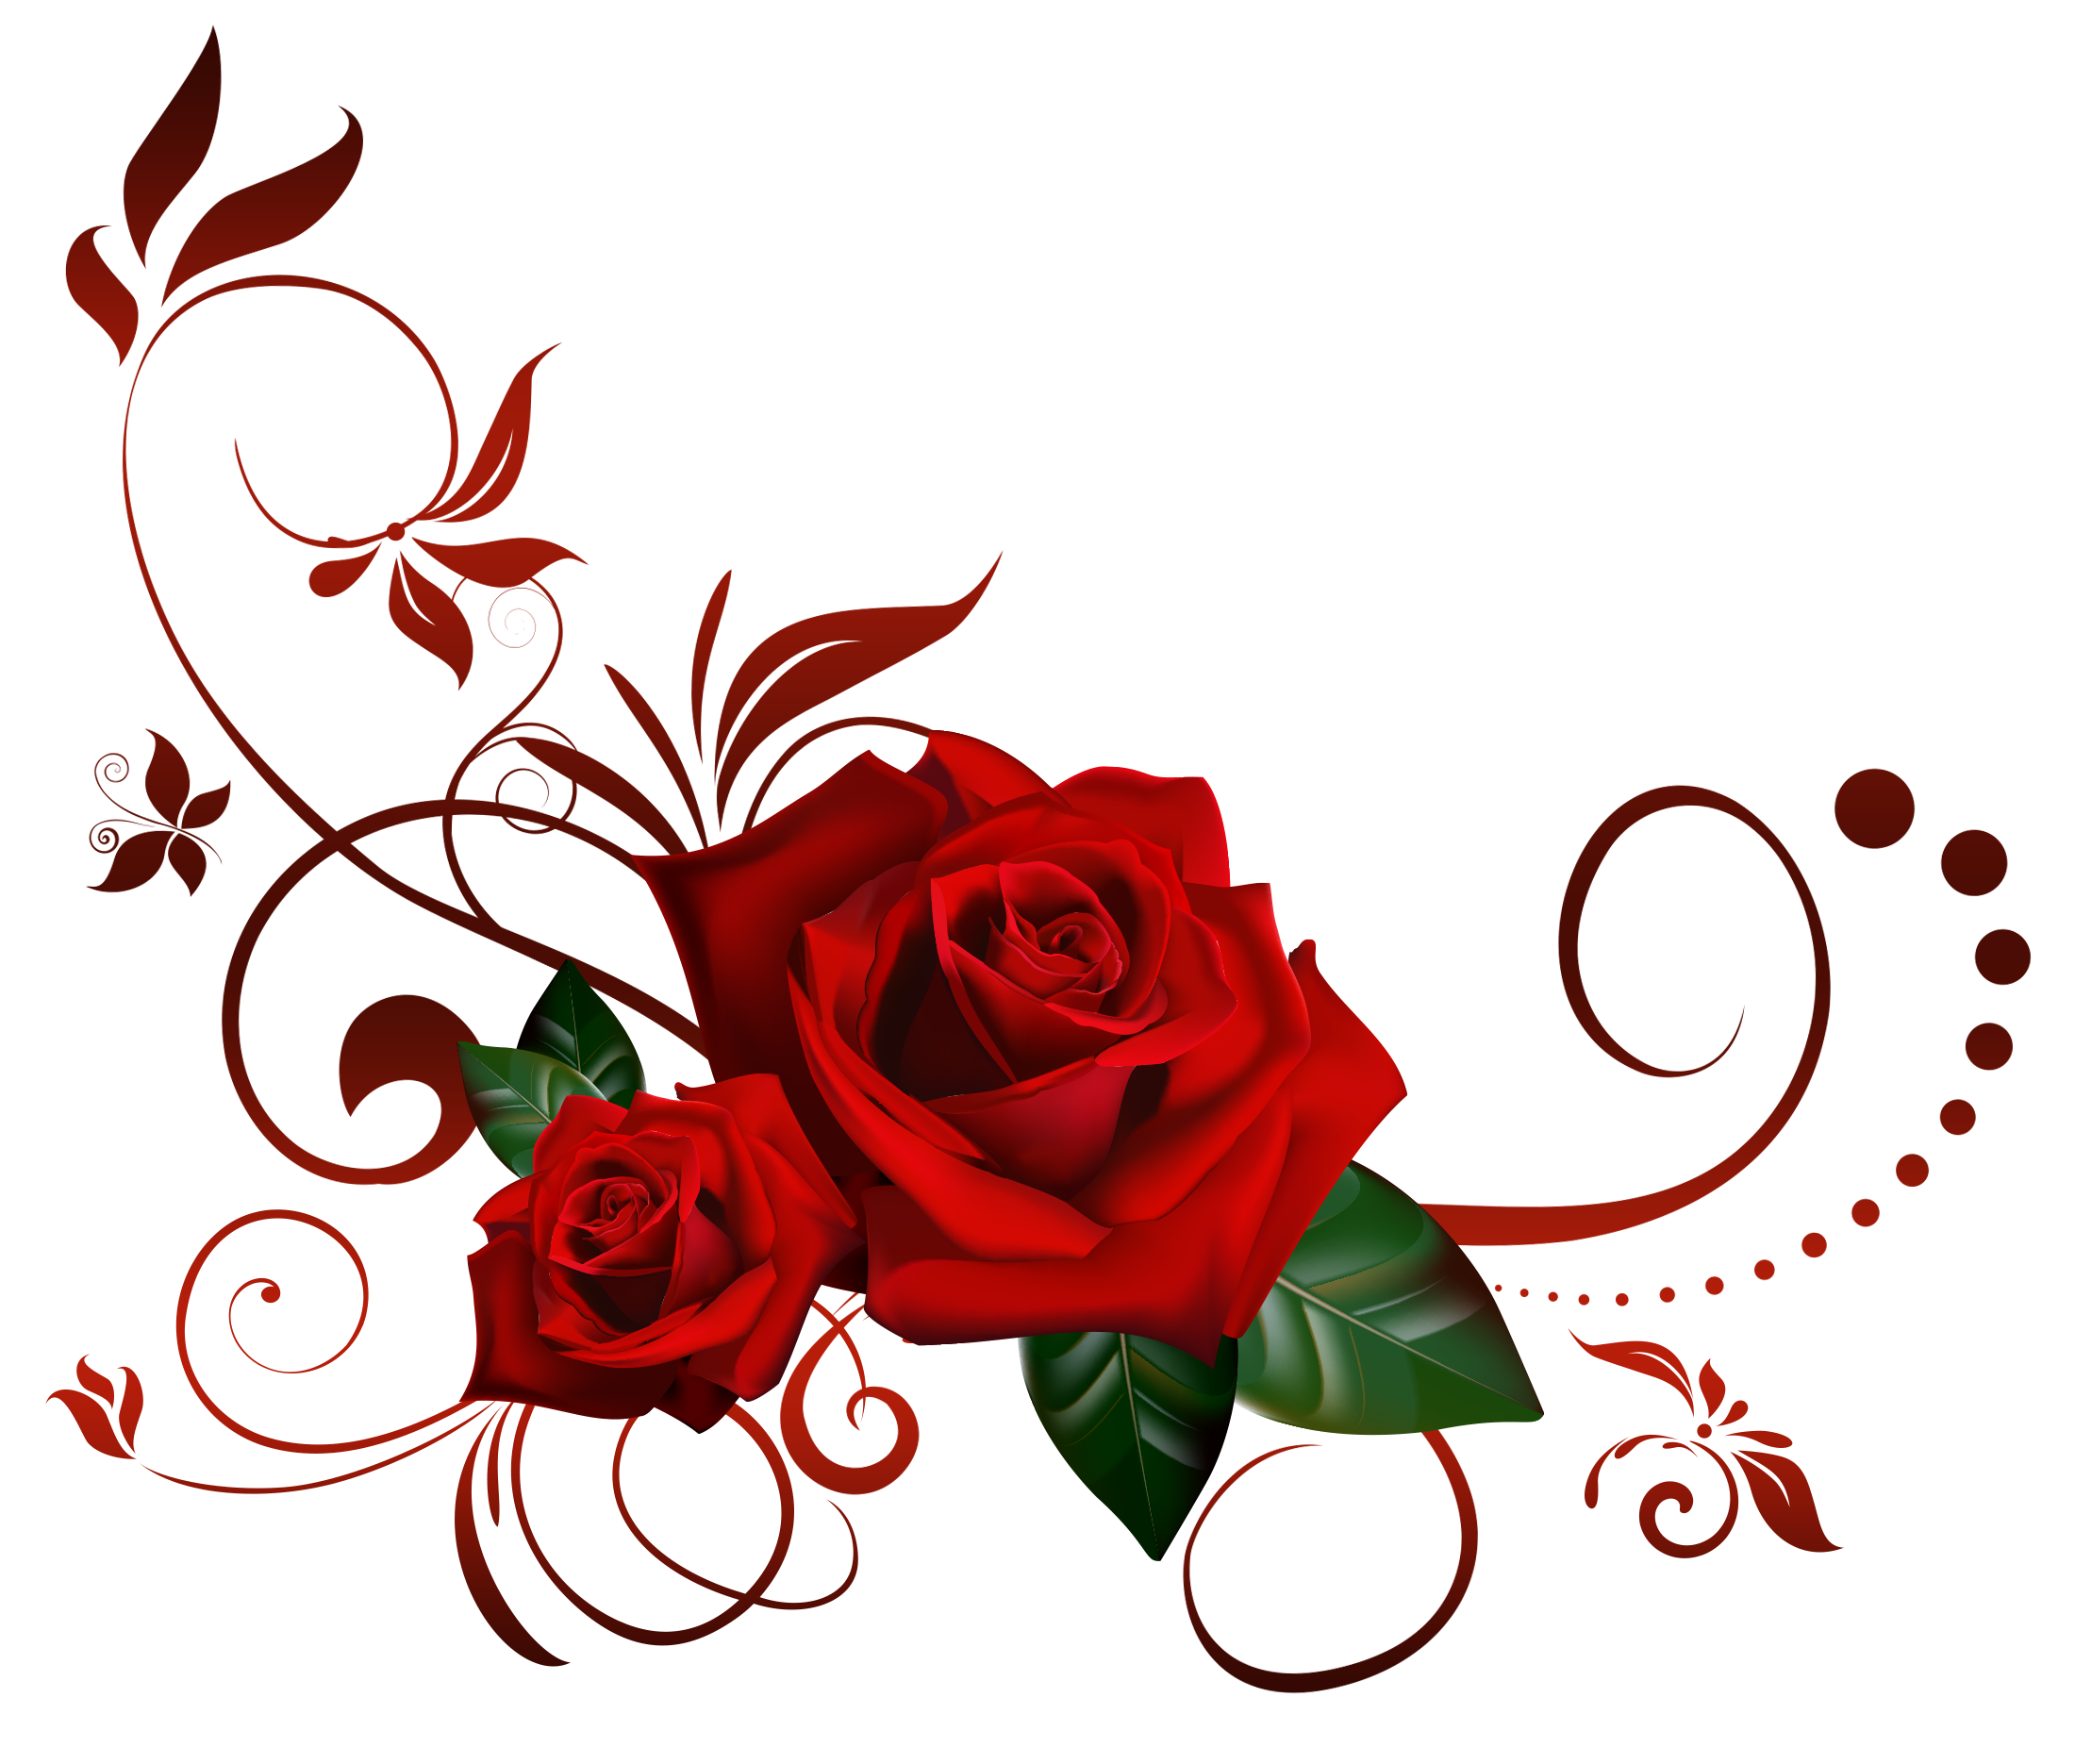 Blue Rose clipart valentines day rose Png Free clipart photoshop Icons